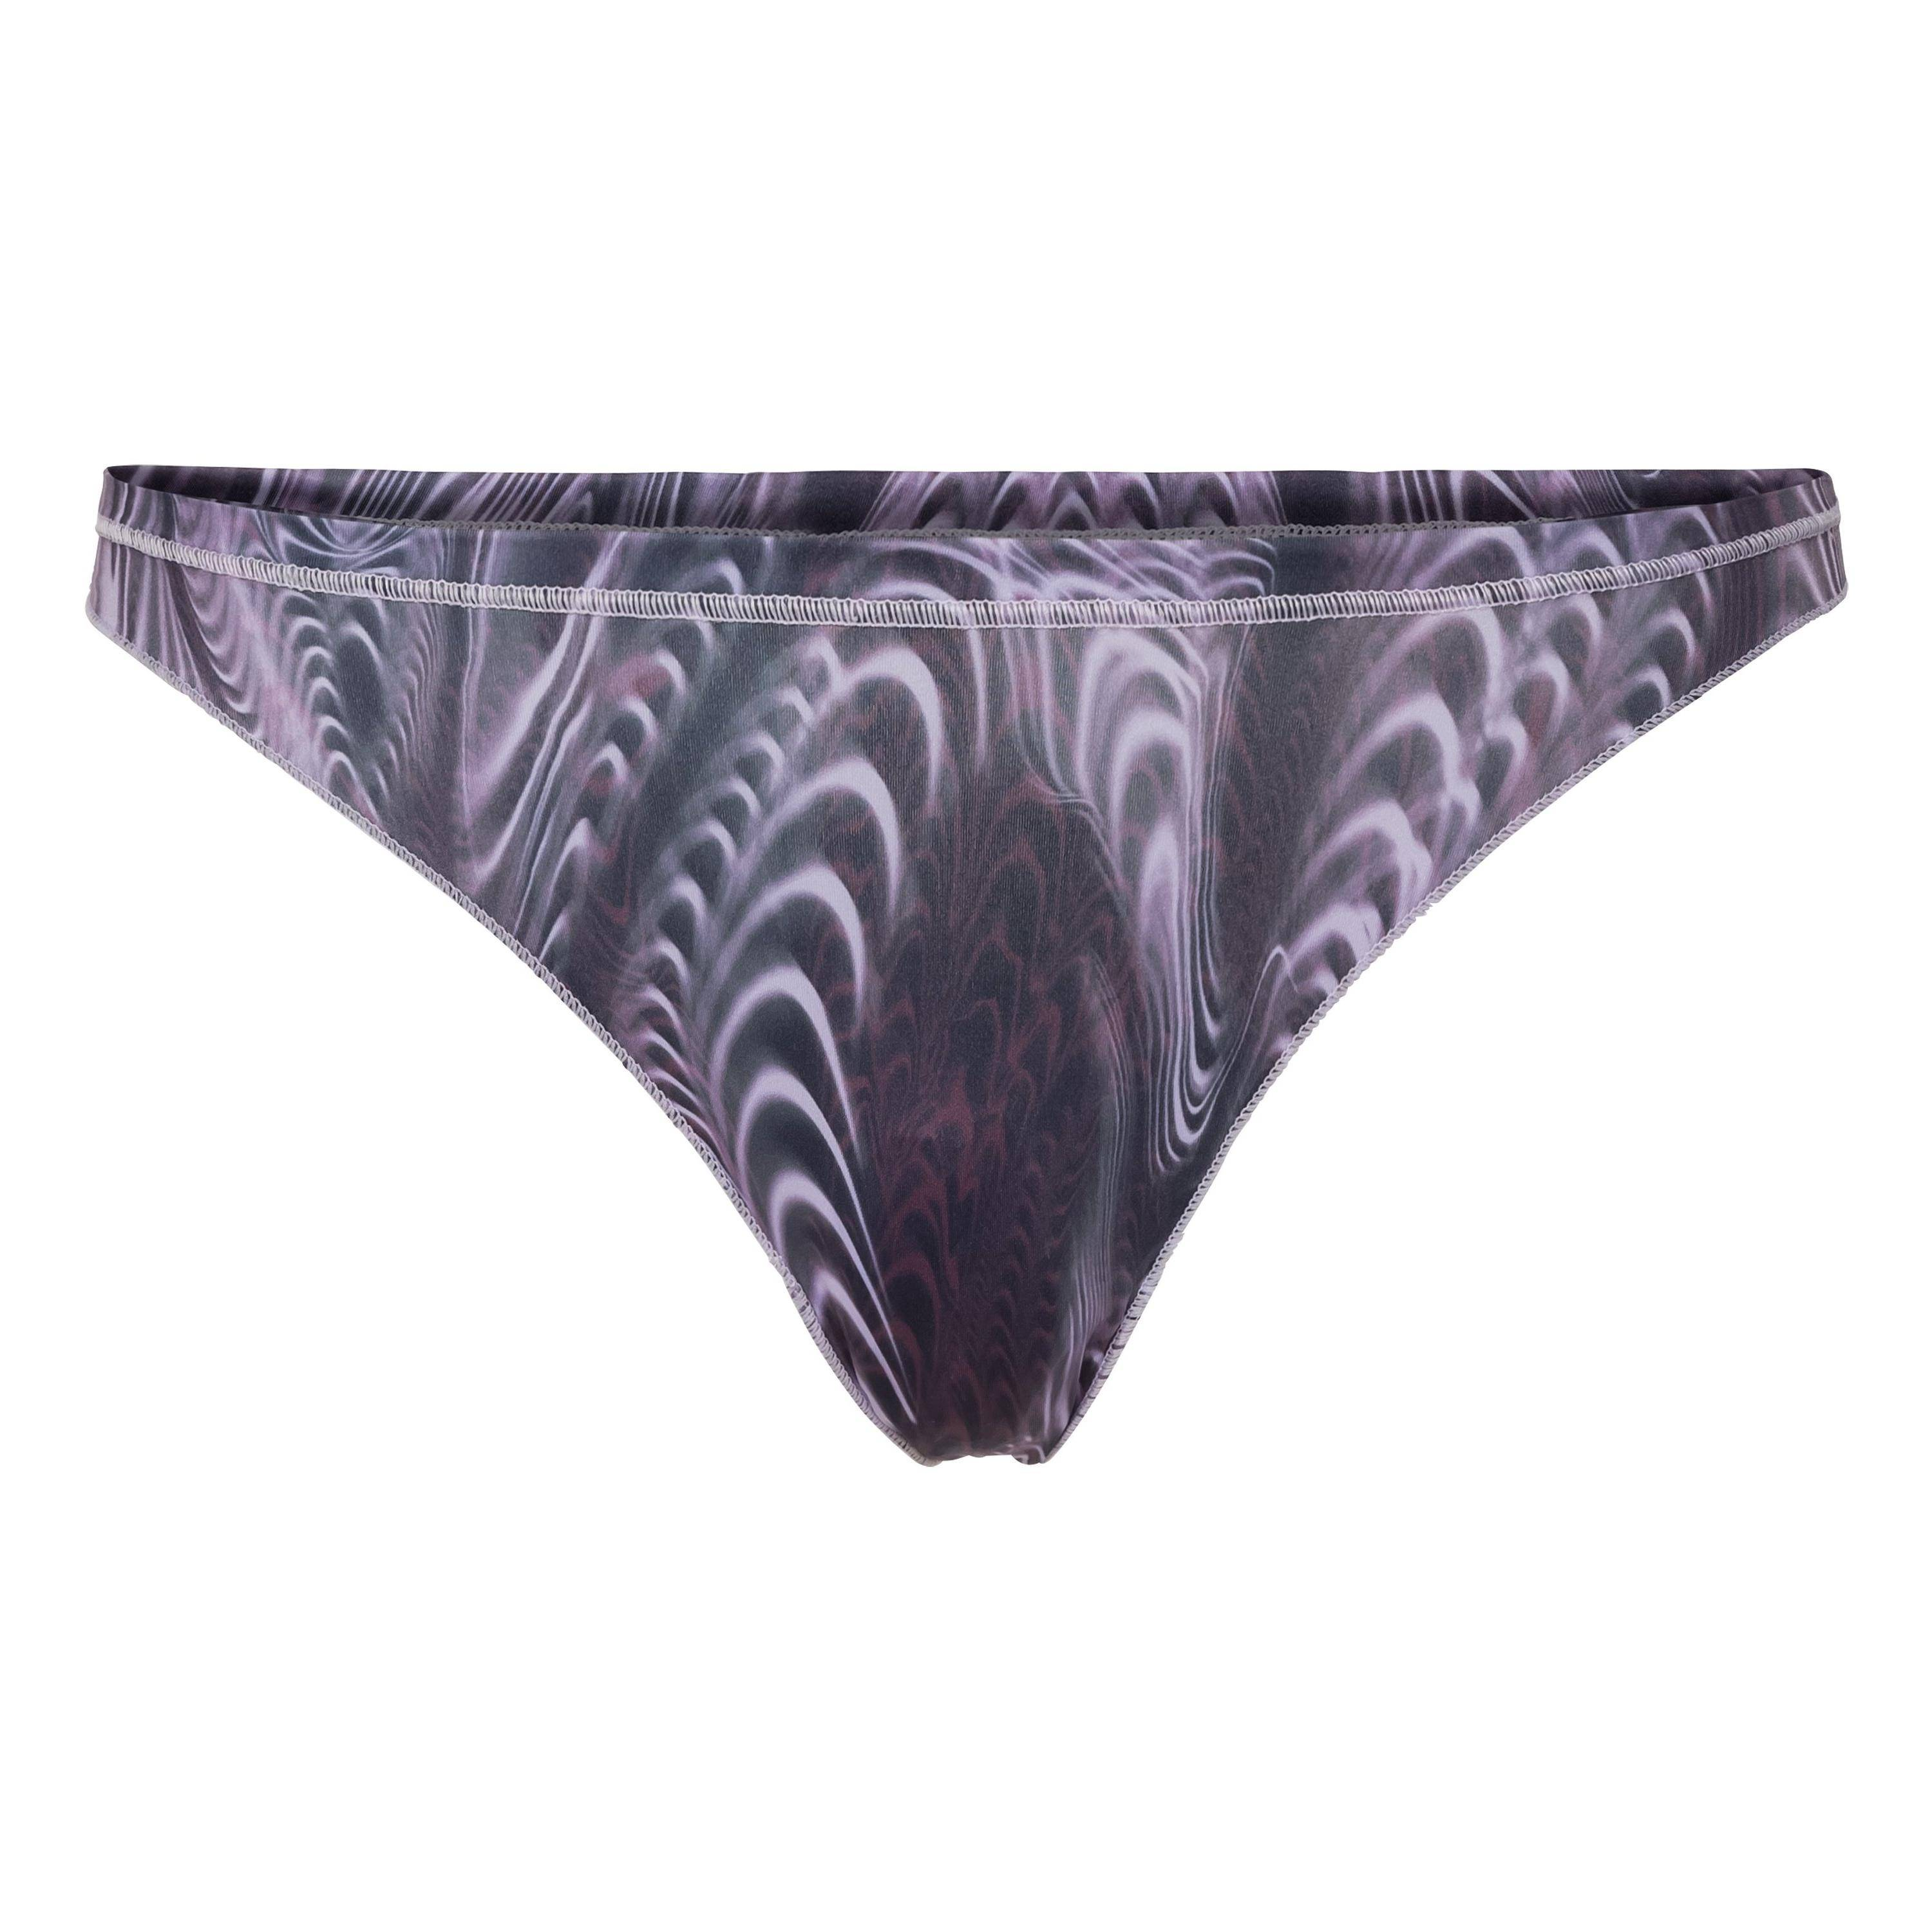 Odlo SUW Bottom THE INVISIBLES Tanga mit Print